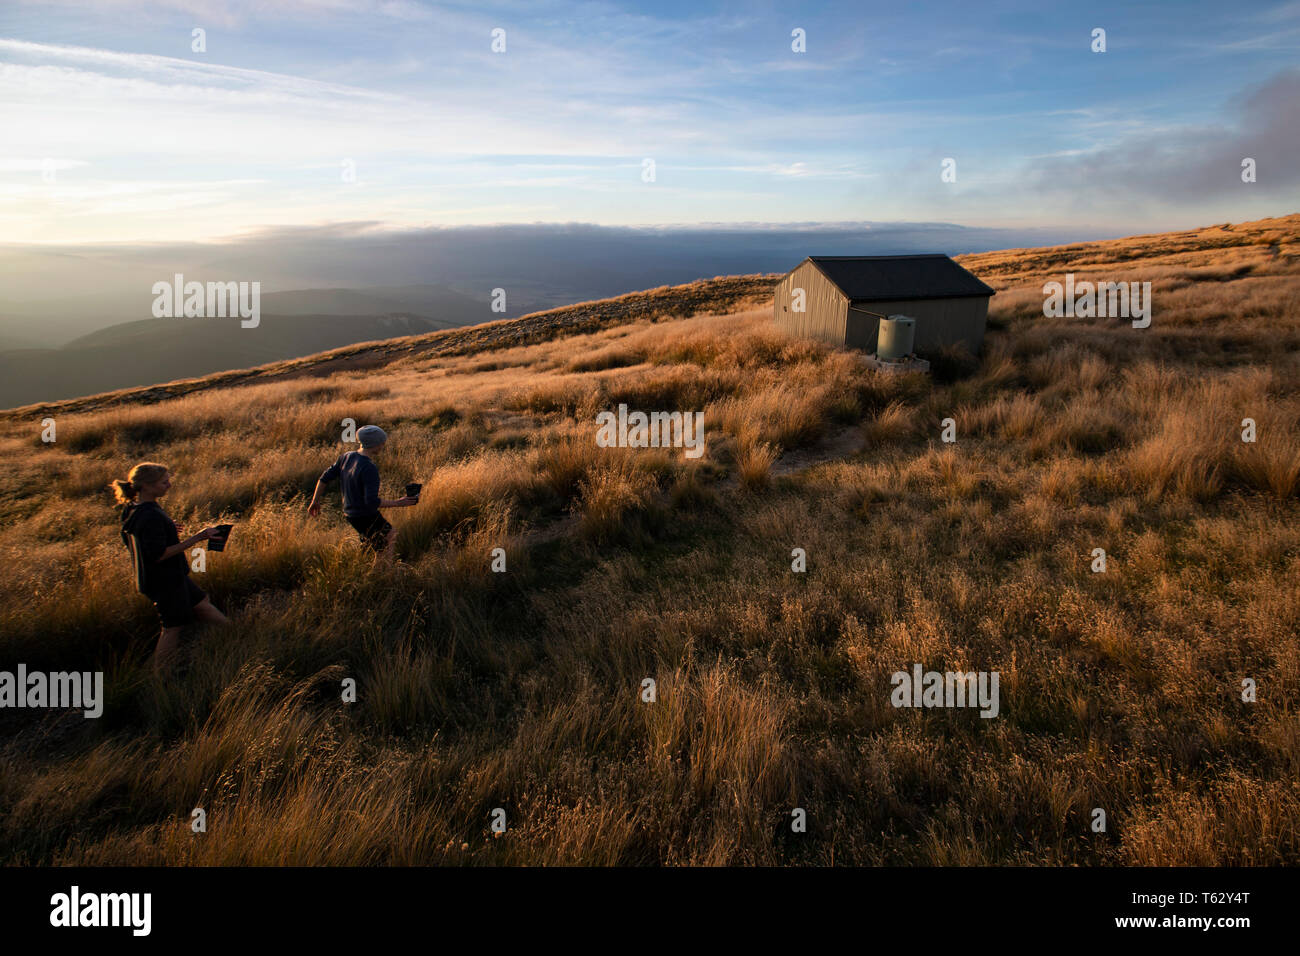 Picture by Tim Cuff - 23/24 March 2018 - Tramping on Mount Roberts, Nelson, New Zealand Stock Photo